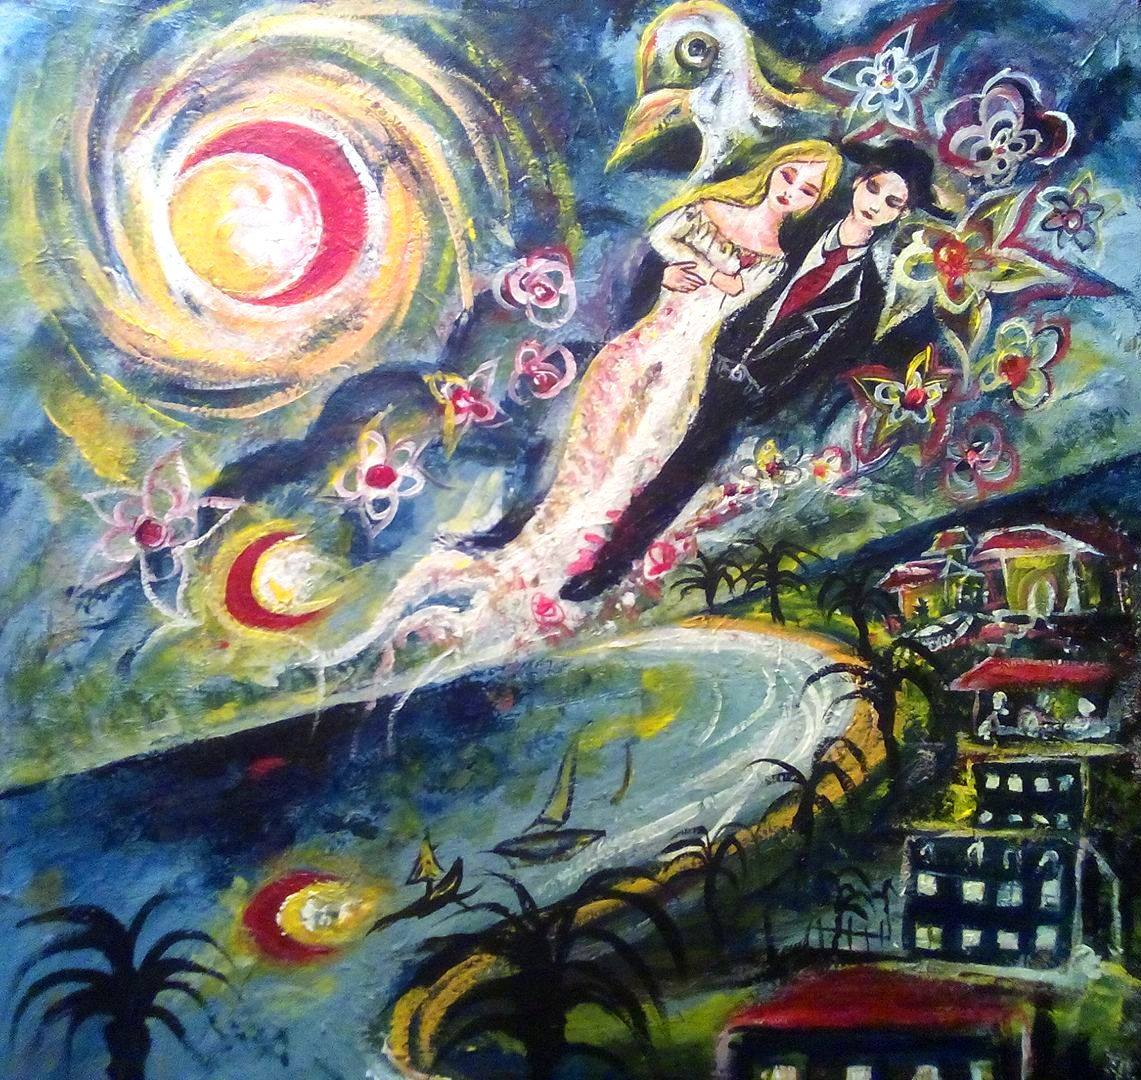 Marc Chagall Lovers-over-the-sky-marc-chagall-remake-by-igli-marion-f7ad338d-7adc-48df-a530-9f9e8311f934